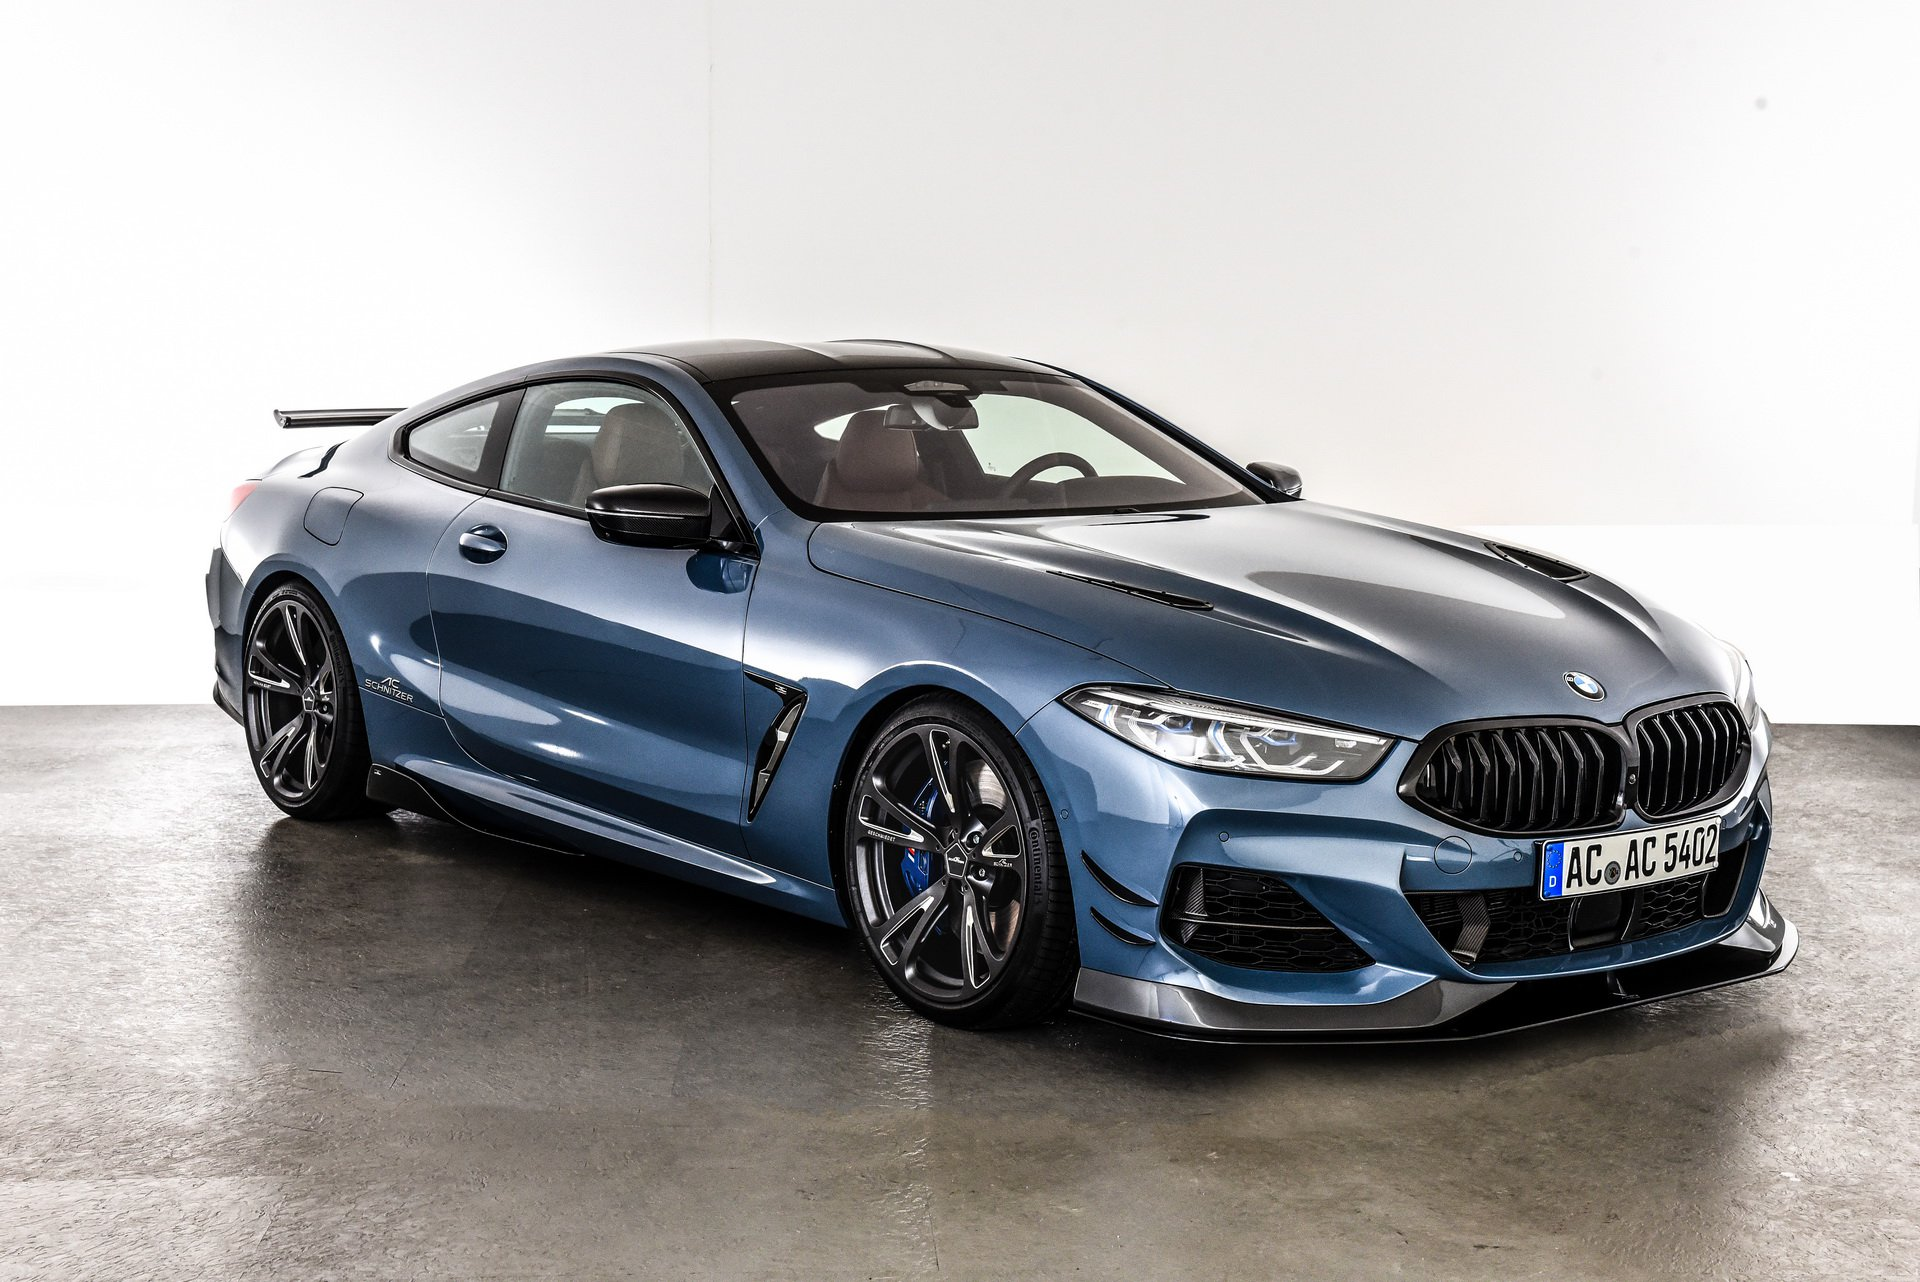 Bmw 8 Series Coupe Ac Schnitzer Tuning Project Is